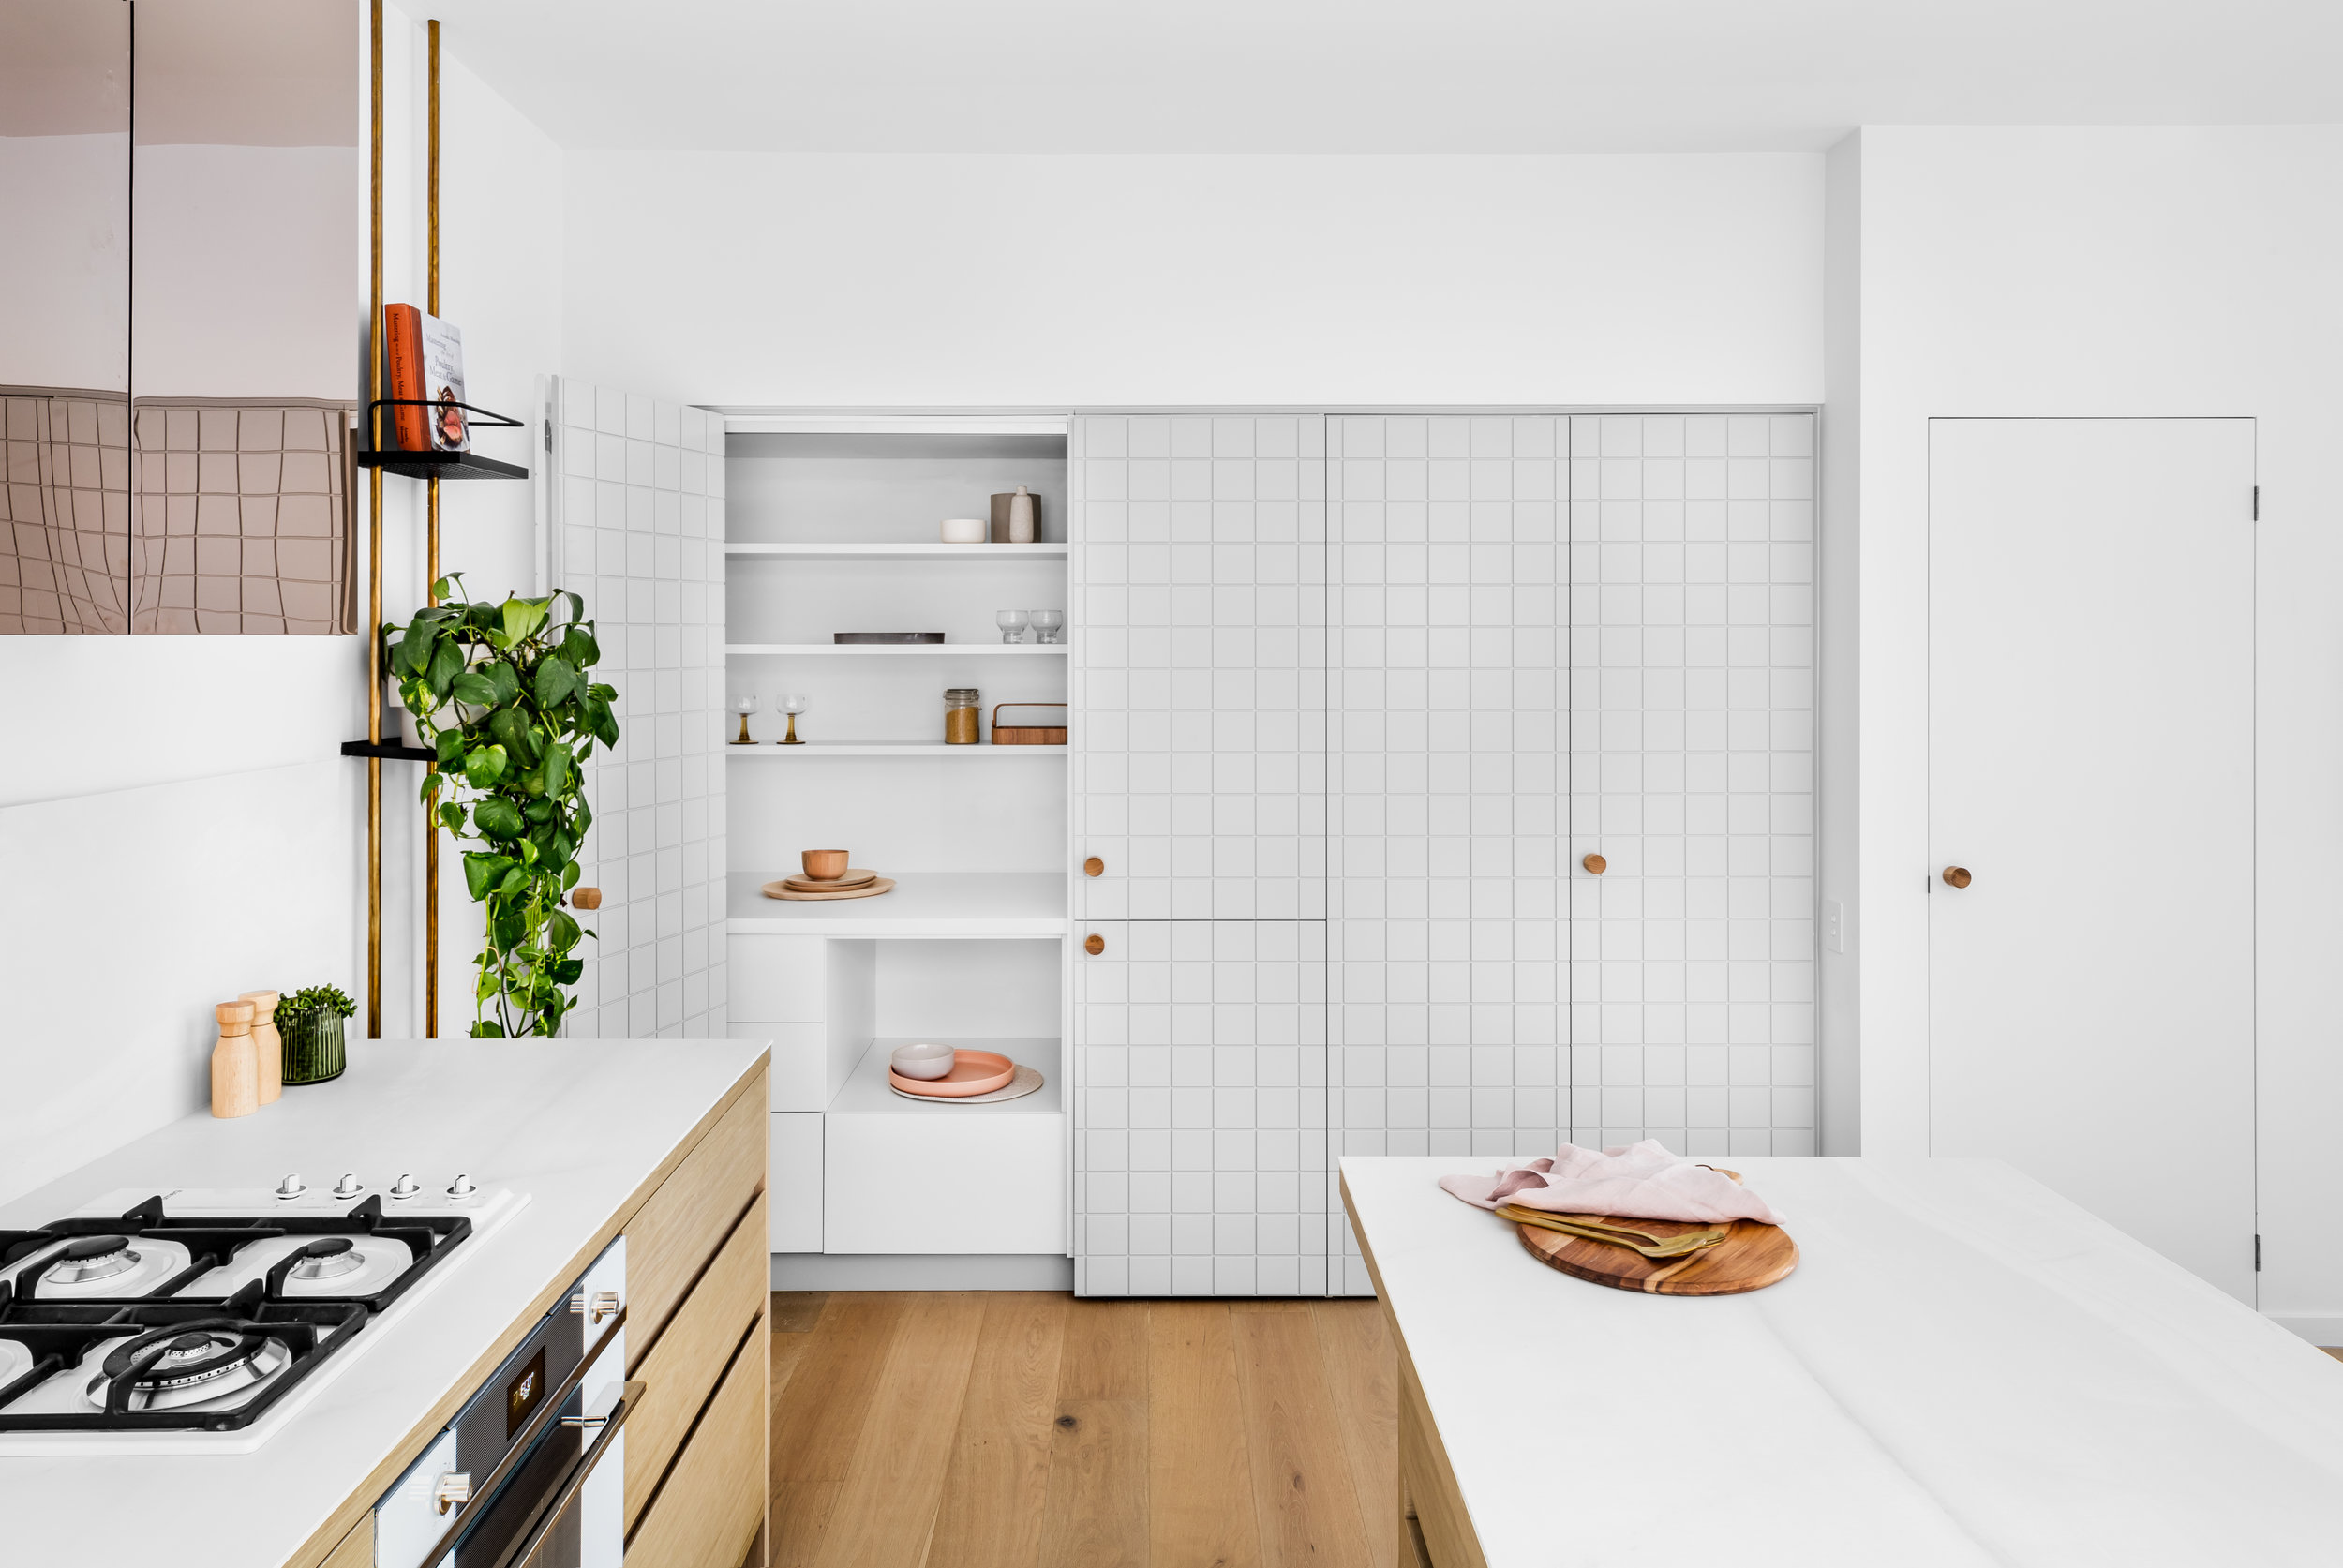 Finishes have aspects of reflectivity and neutrality including brass tapware, cabinetry and rangehood in the kitchen, white walls, white tiles and light grey terrazzo flooring in the bathrooms. Photo -  Maegan Brown .